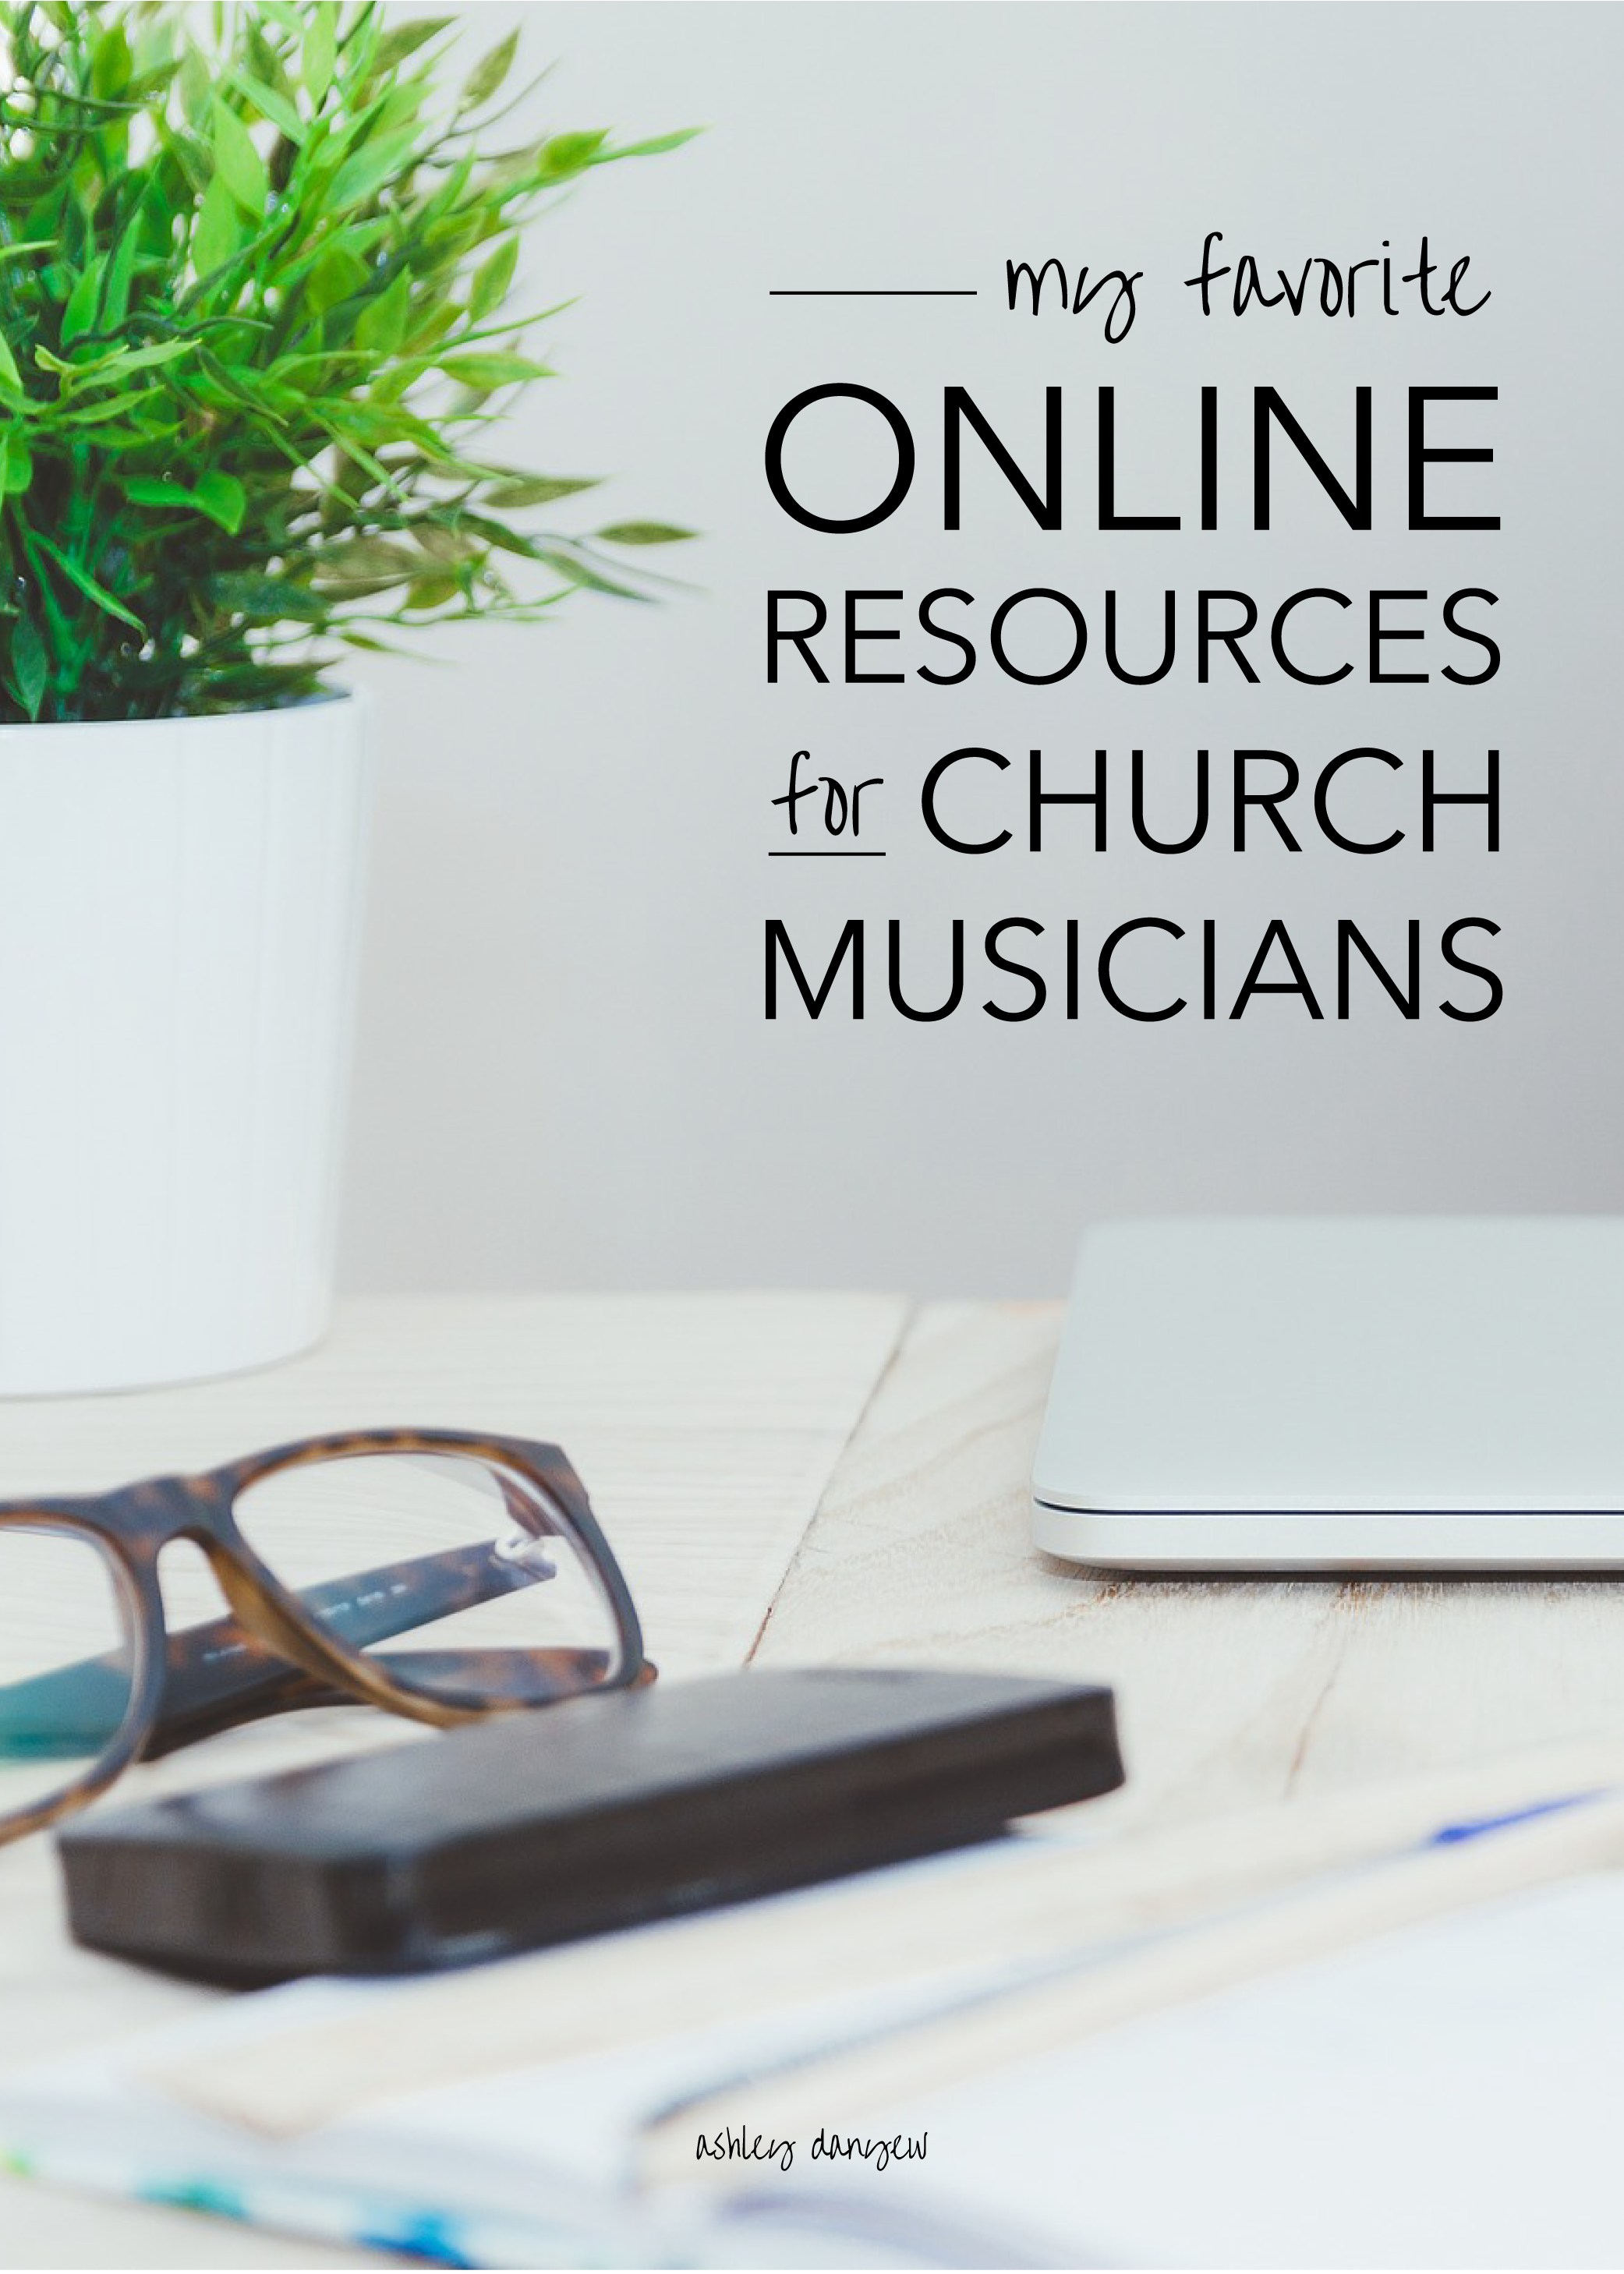 Copy of My Favorite Online Resources for Church Musicians